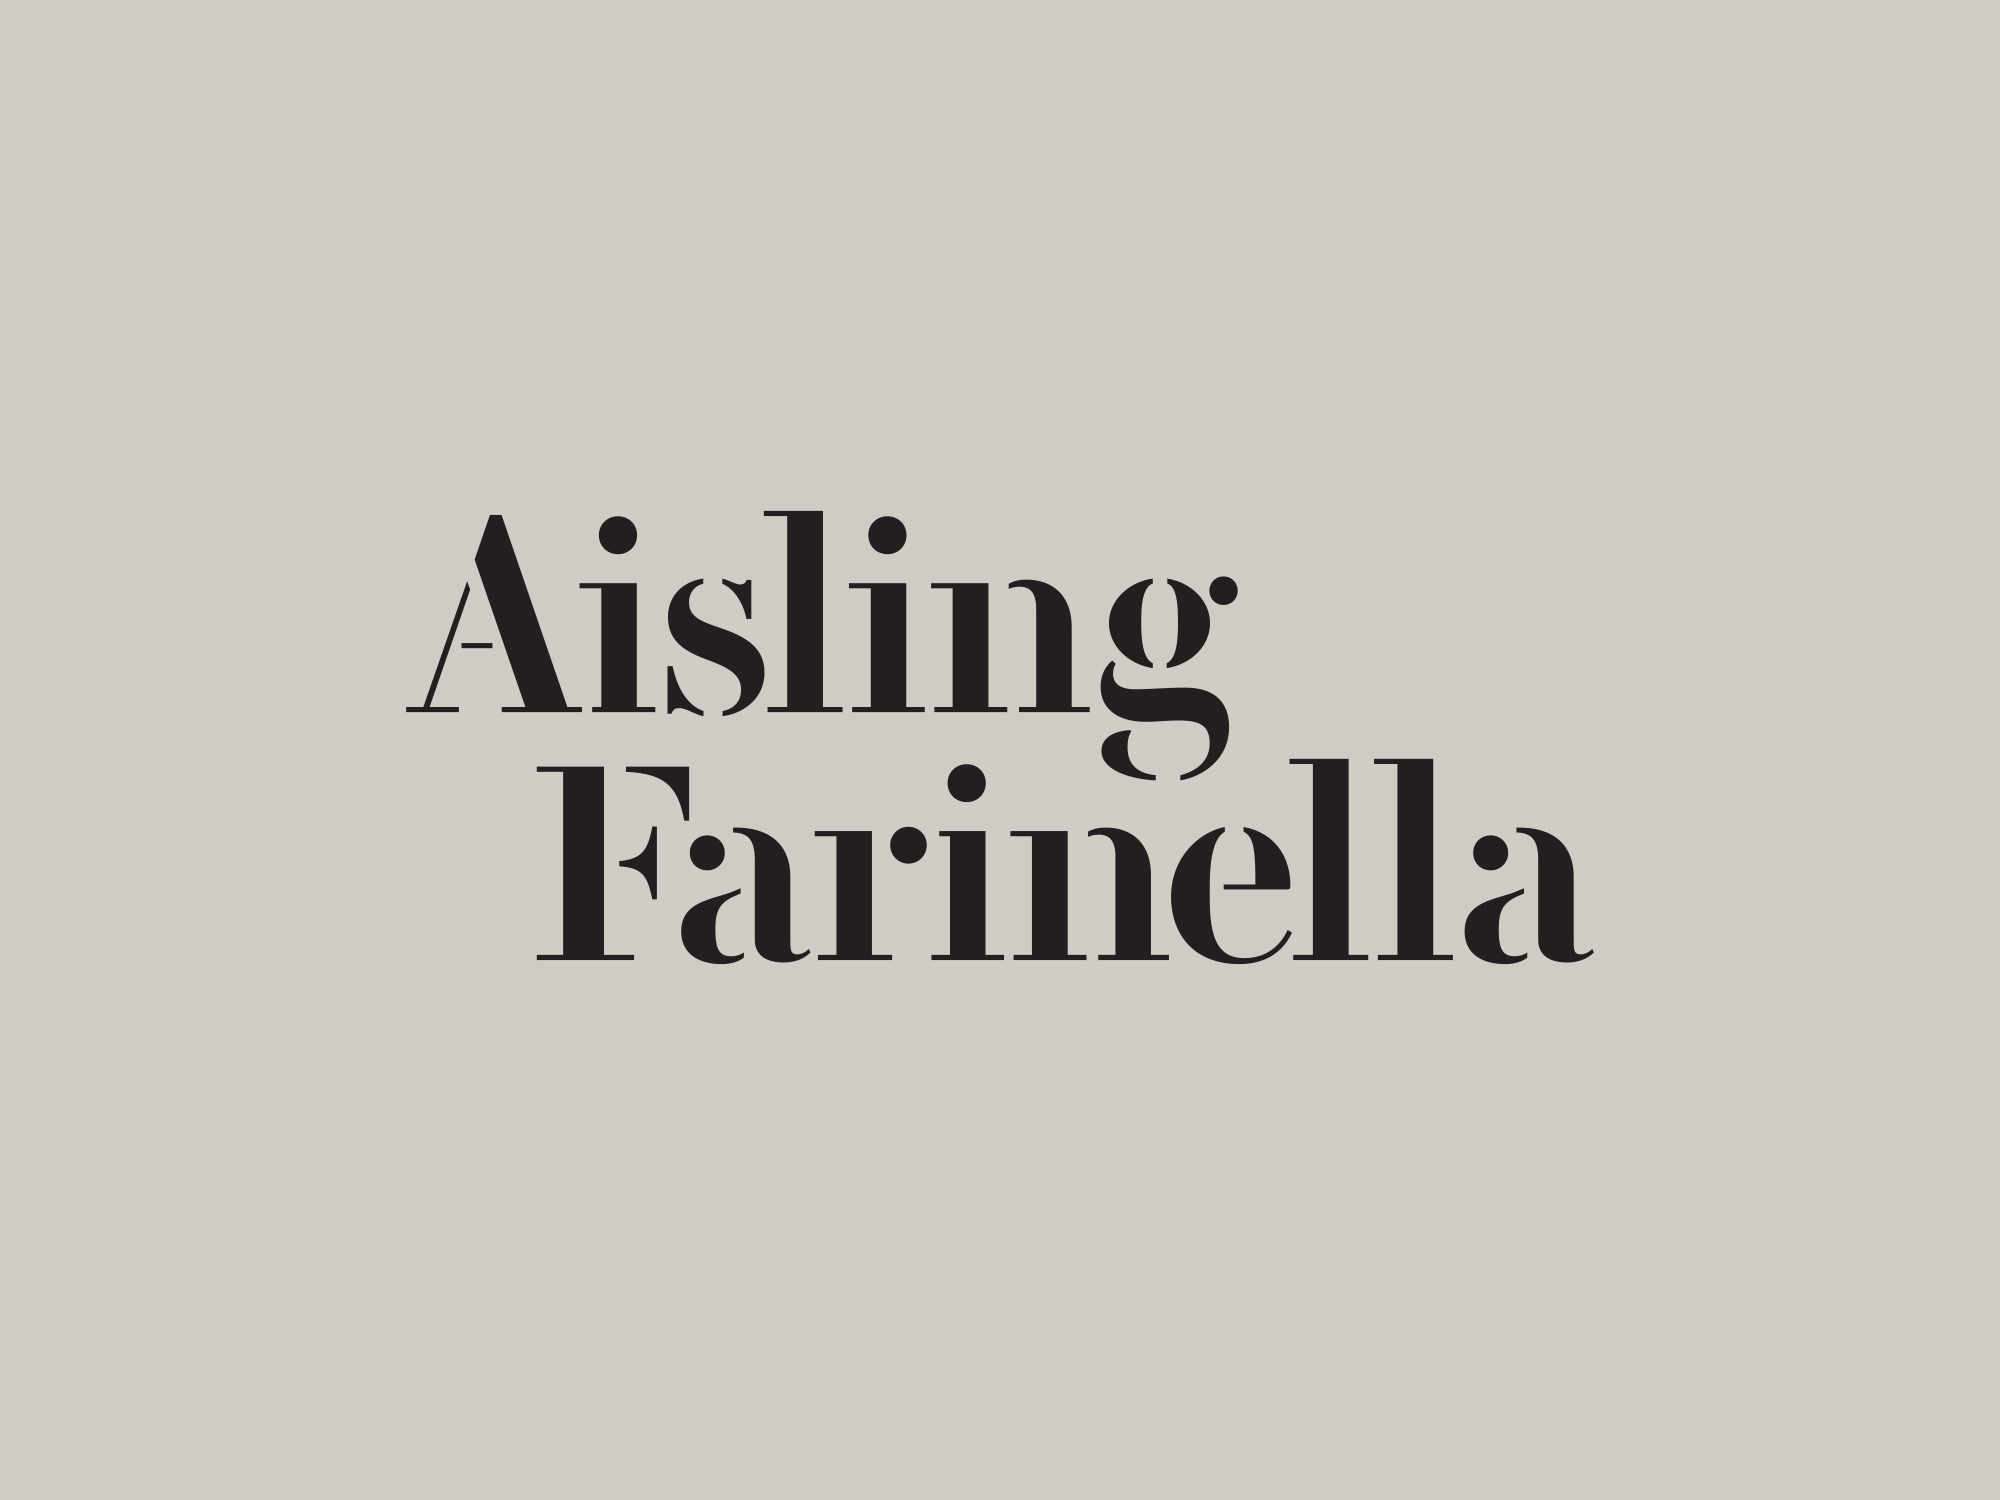 Cover image: Aisling Farinella Identity & Website